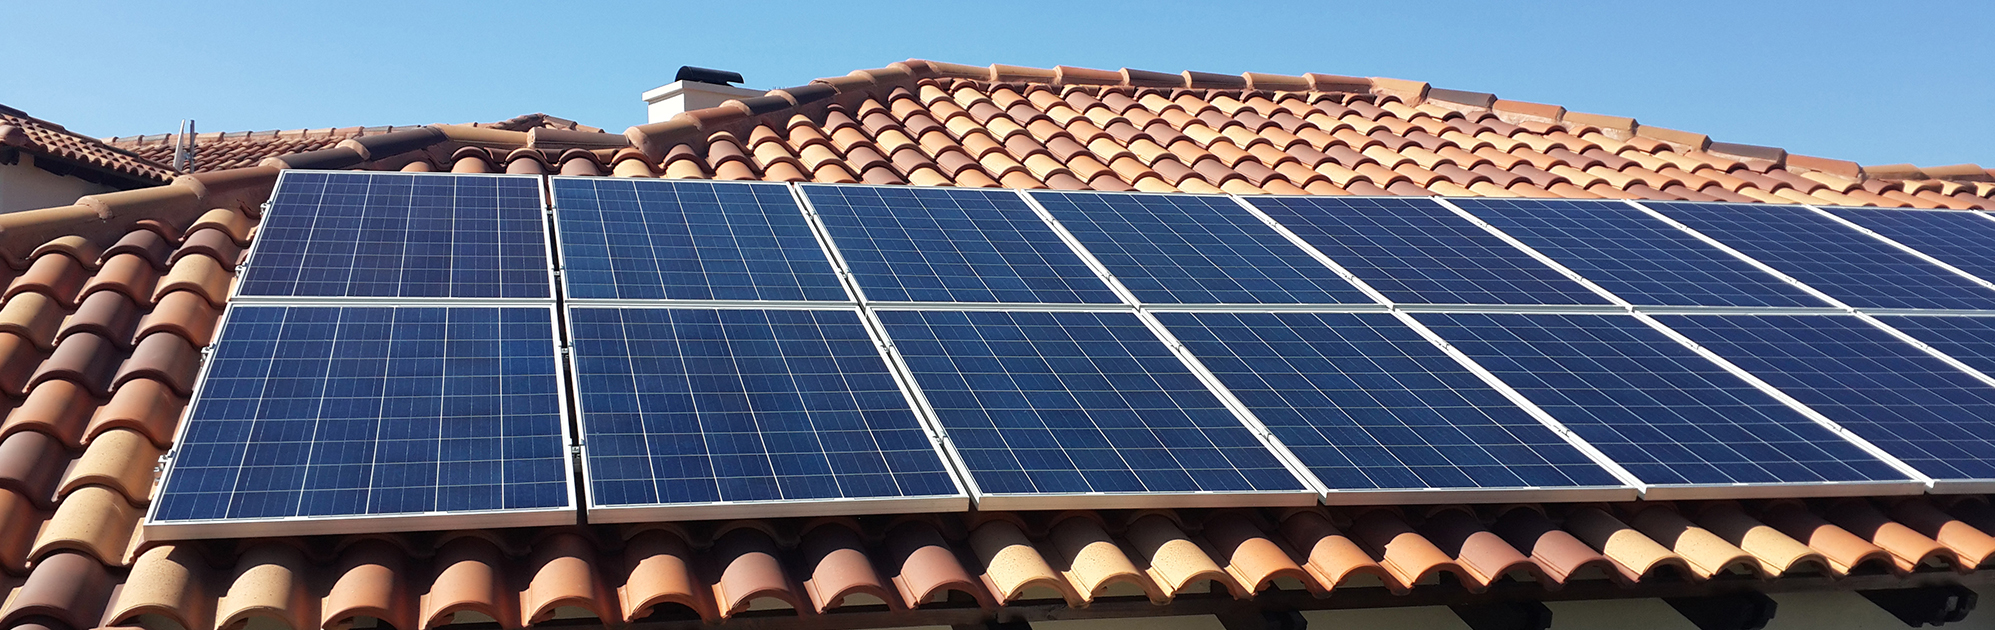 RESIDENTIAL SOLAR POWER PHOTOVOLTAIC SOLUTIONS Image